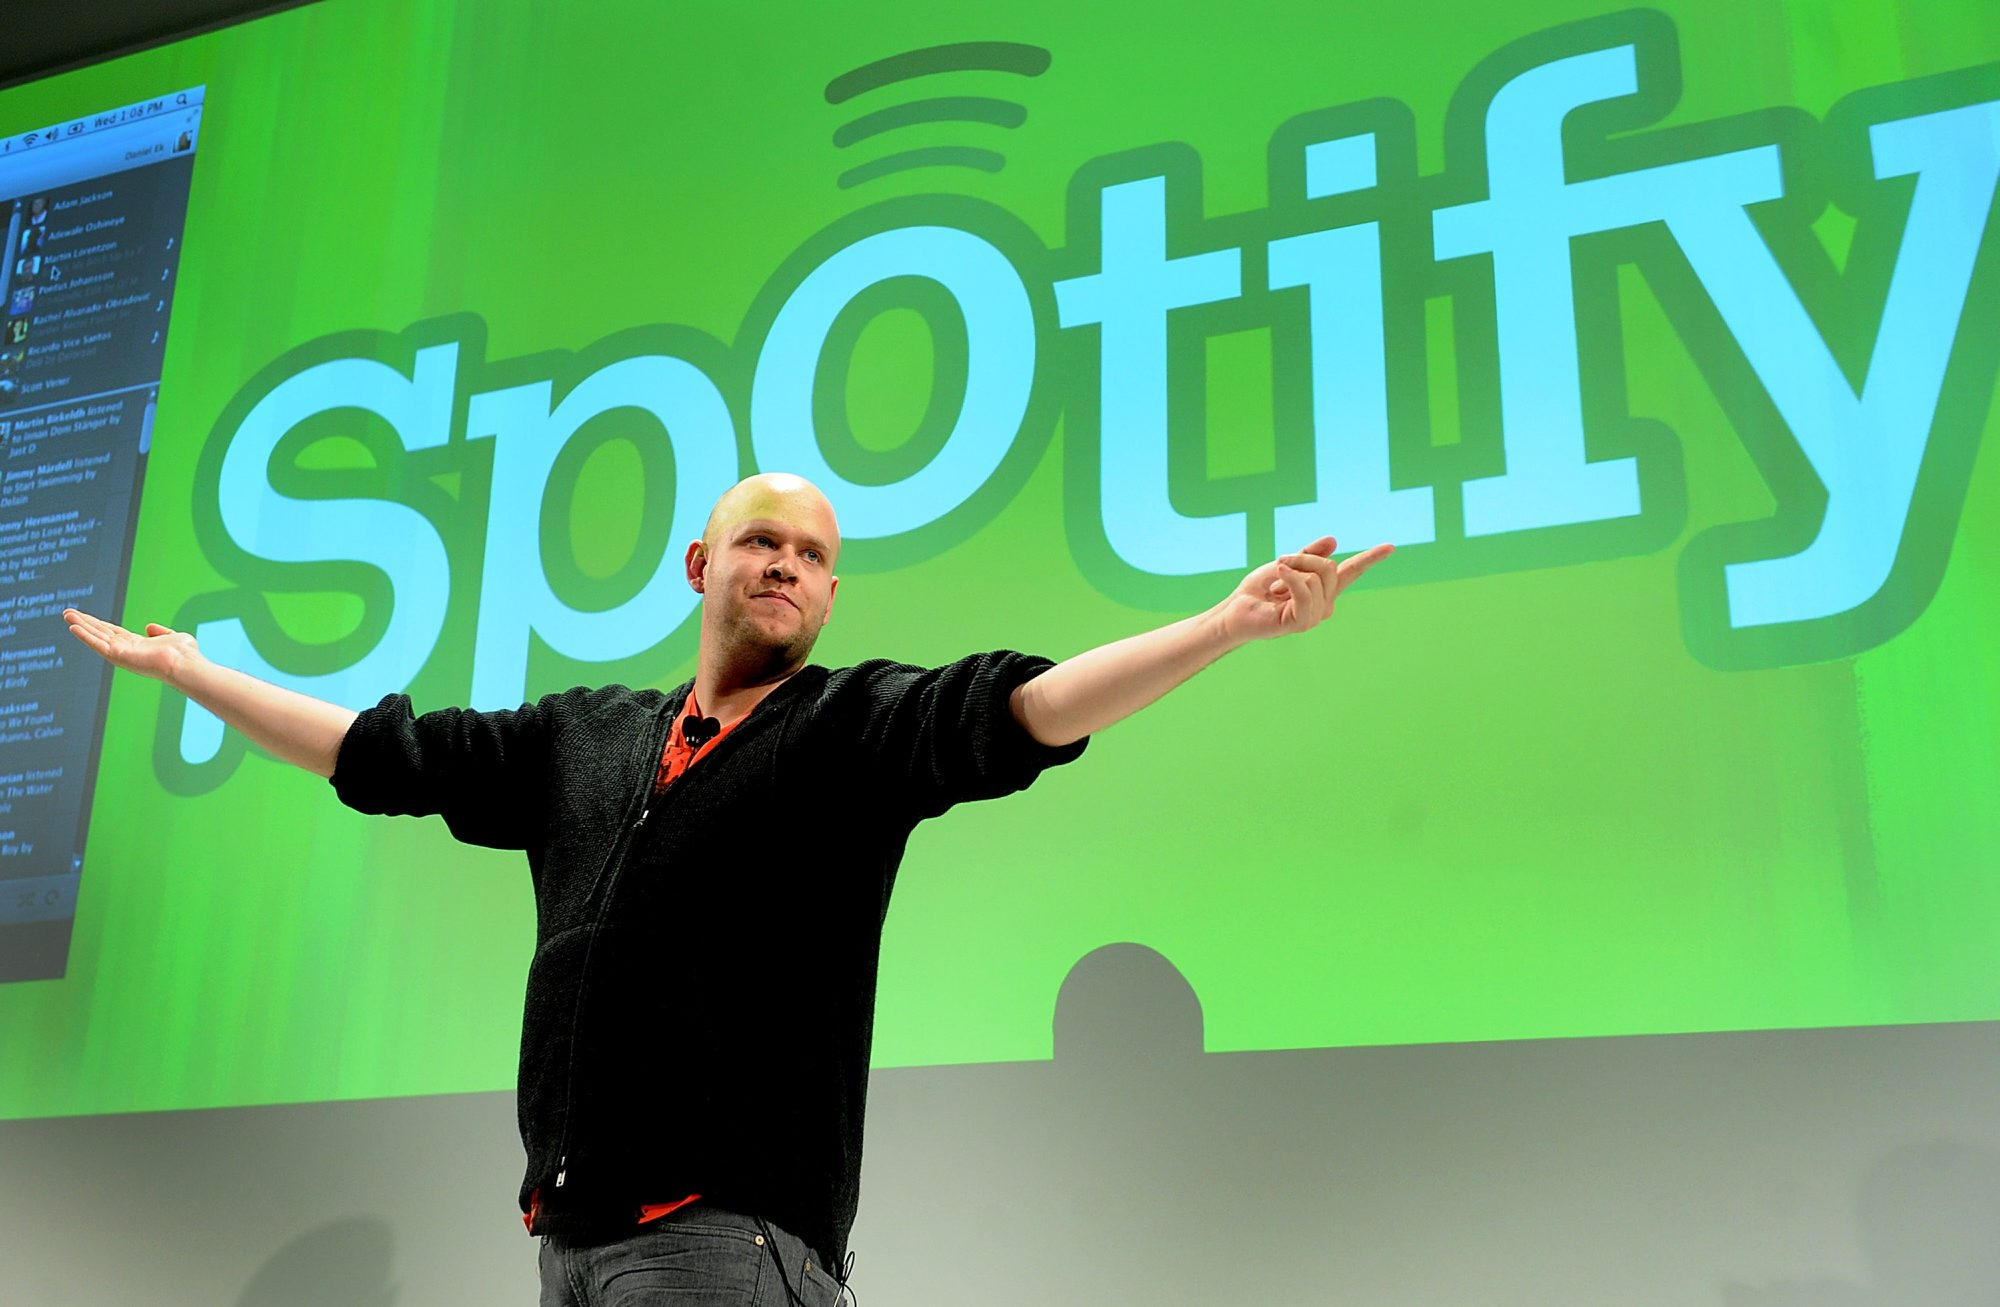 Daniel Ek, chief executive officer of Spotify Ltd., speaks at a news conference in New York, U.S., on Wednesday, Nov. 30, 2011. Spotify Ltd., the music-streaming service, will open its site to software developers to attract new users with features such as ticket sales and song lyrics. Photographer: Louis Lanzano/ Bloomberg *** Local Caption *** Daniel Ek